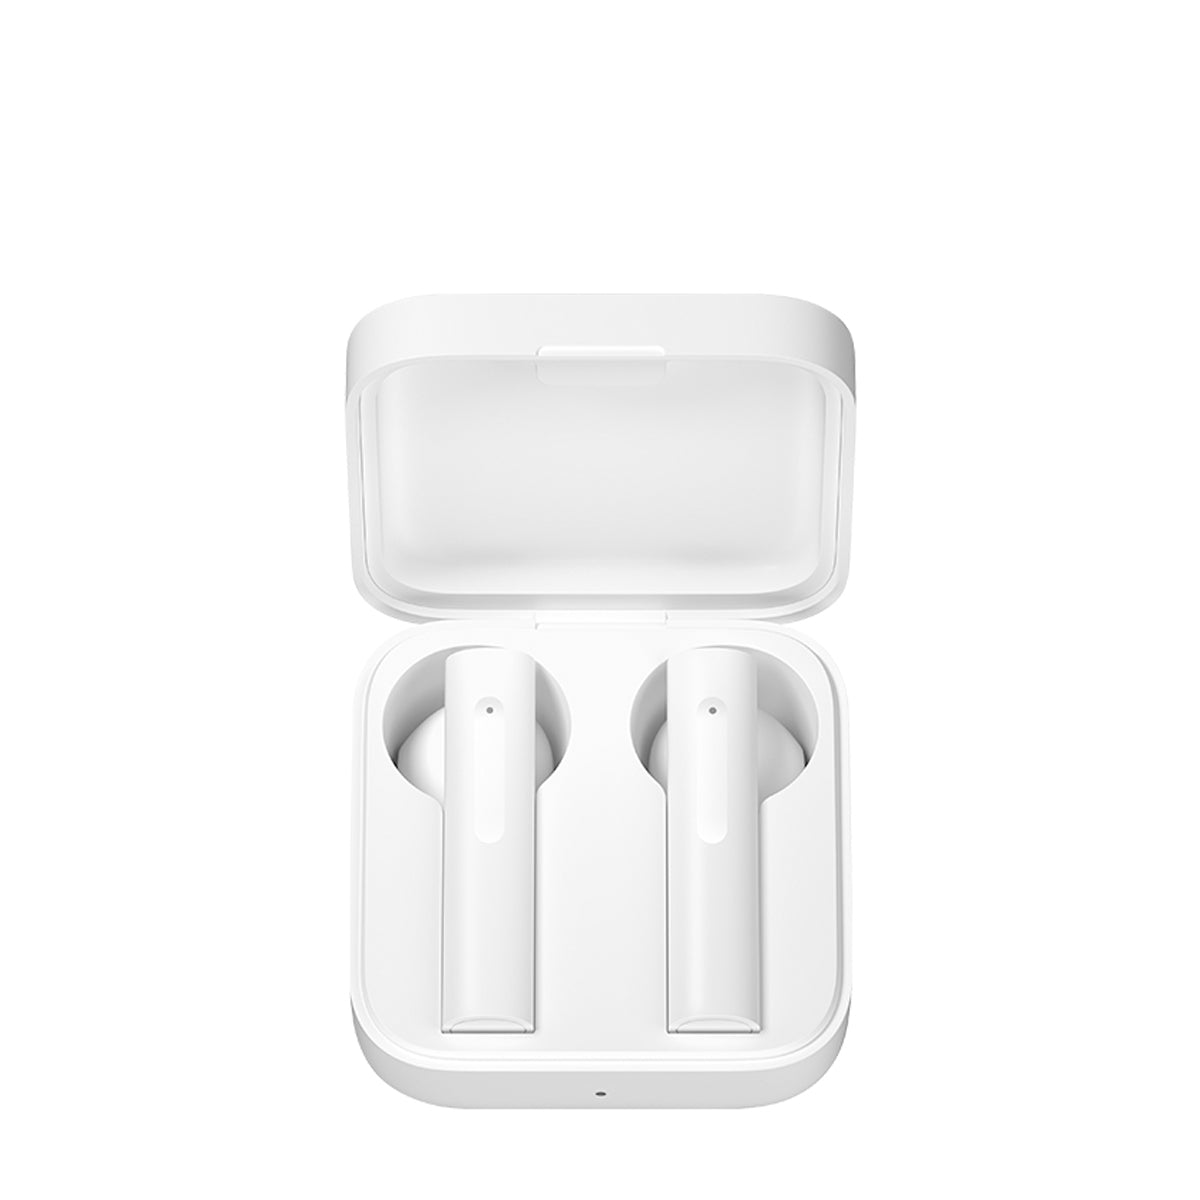 Auriculares Xiaomi Mi True Wireless Air 2 SE Bluetooth Branco